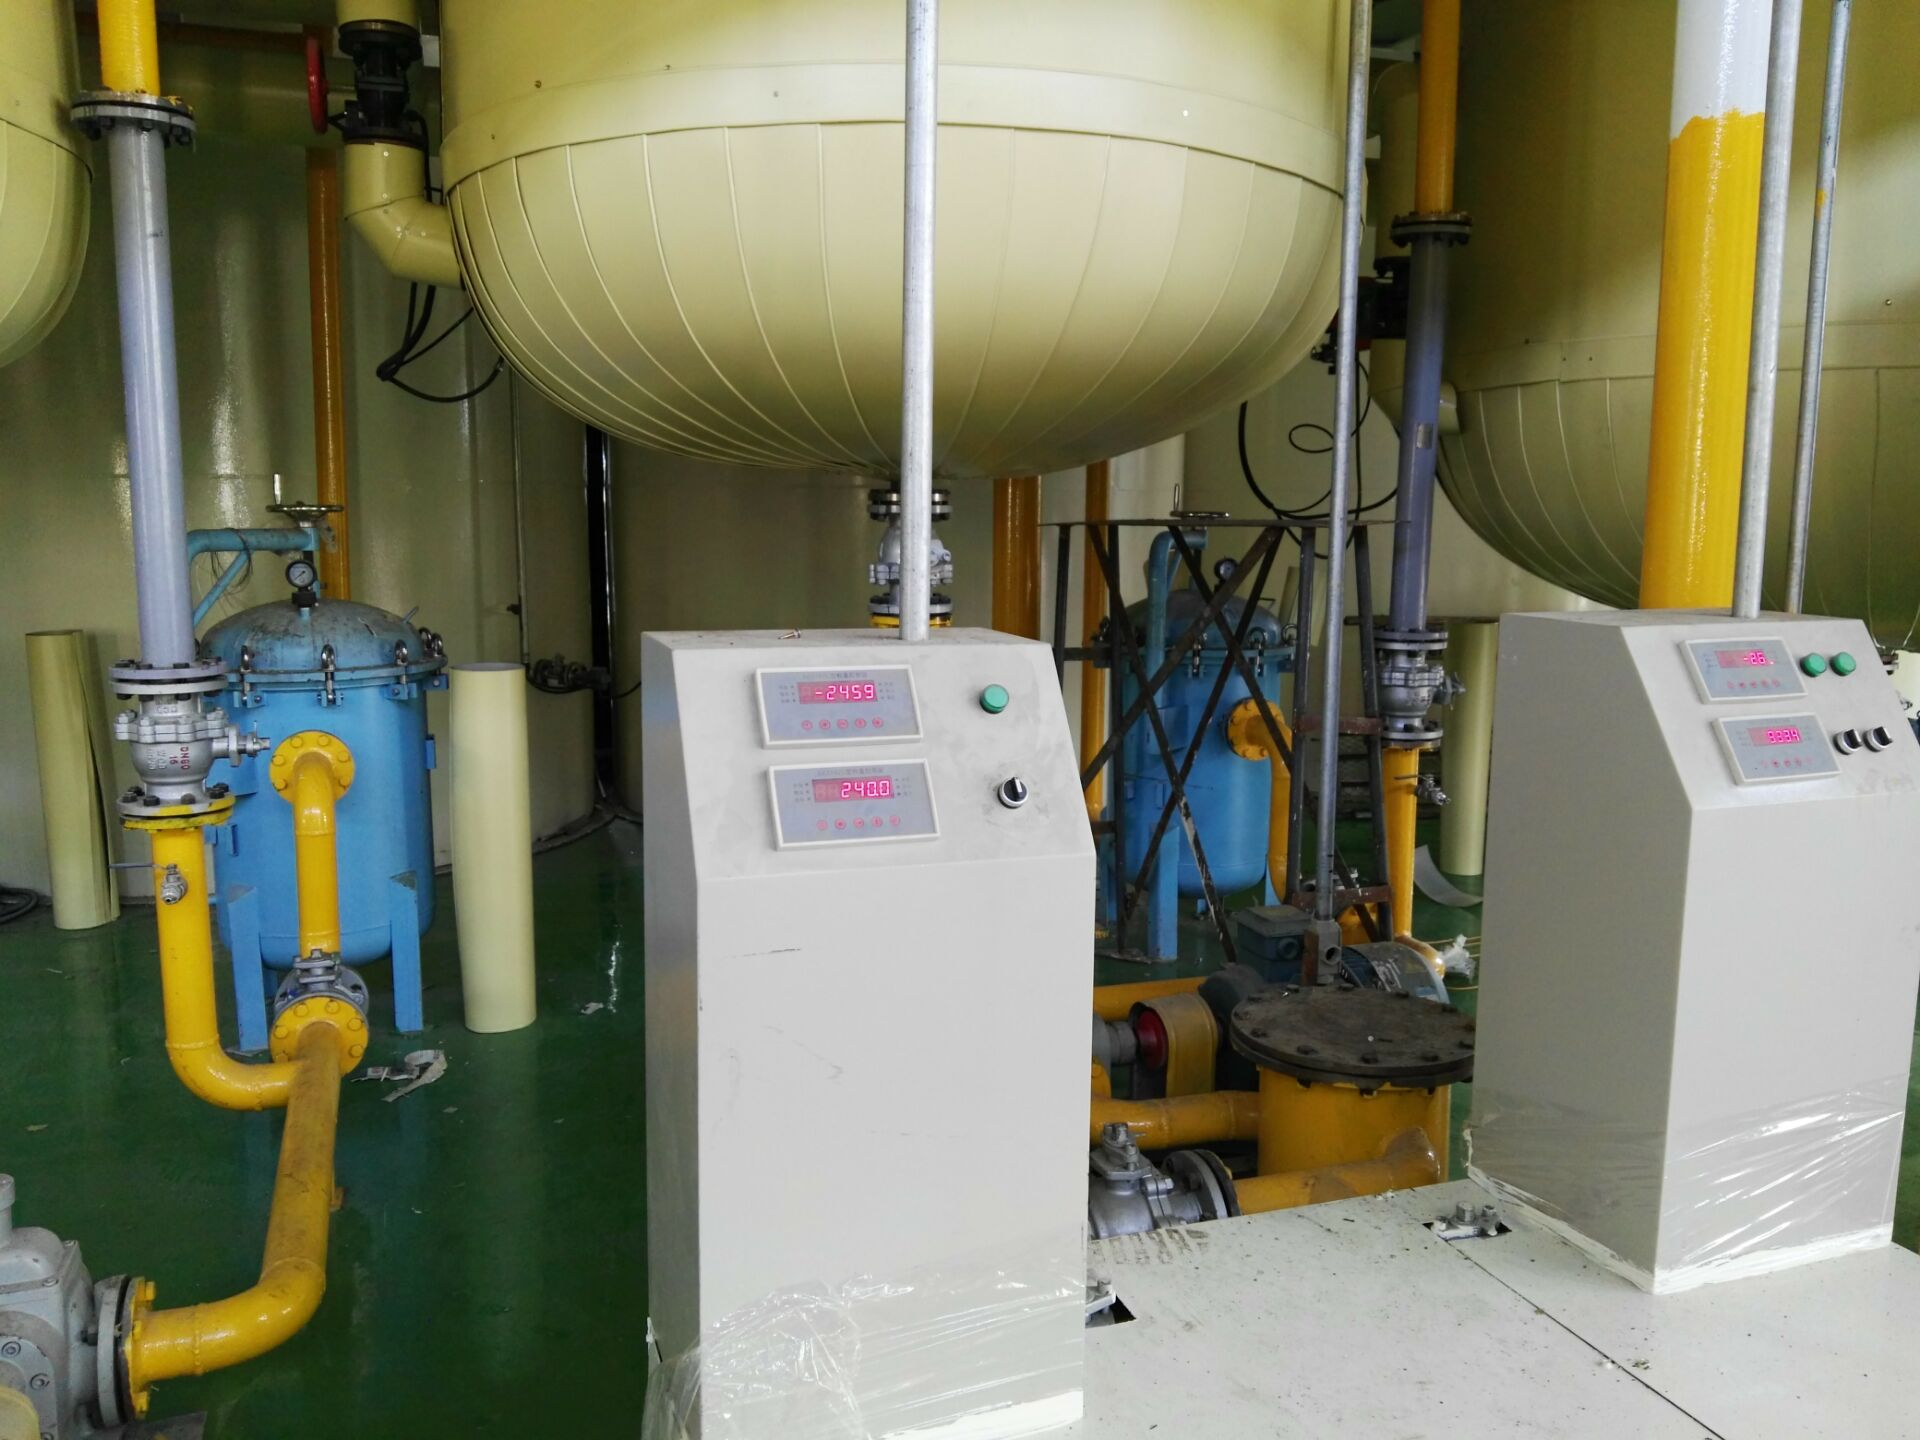 KYLOWEIGH OIL TANK WEIGHING SYSTEM